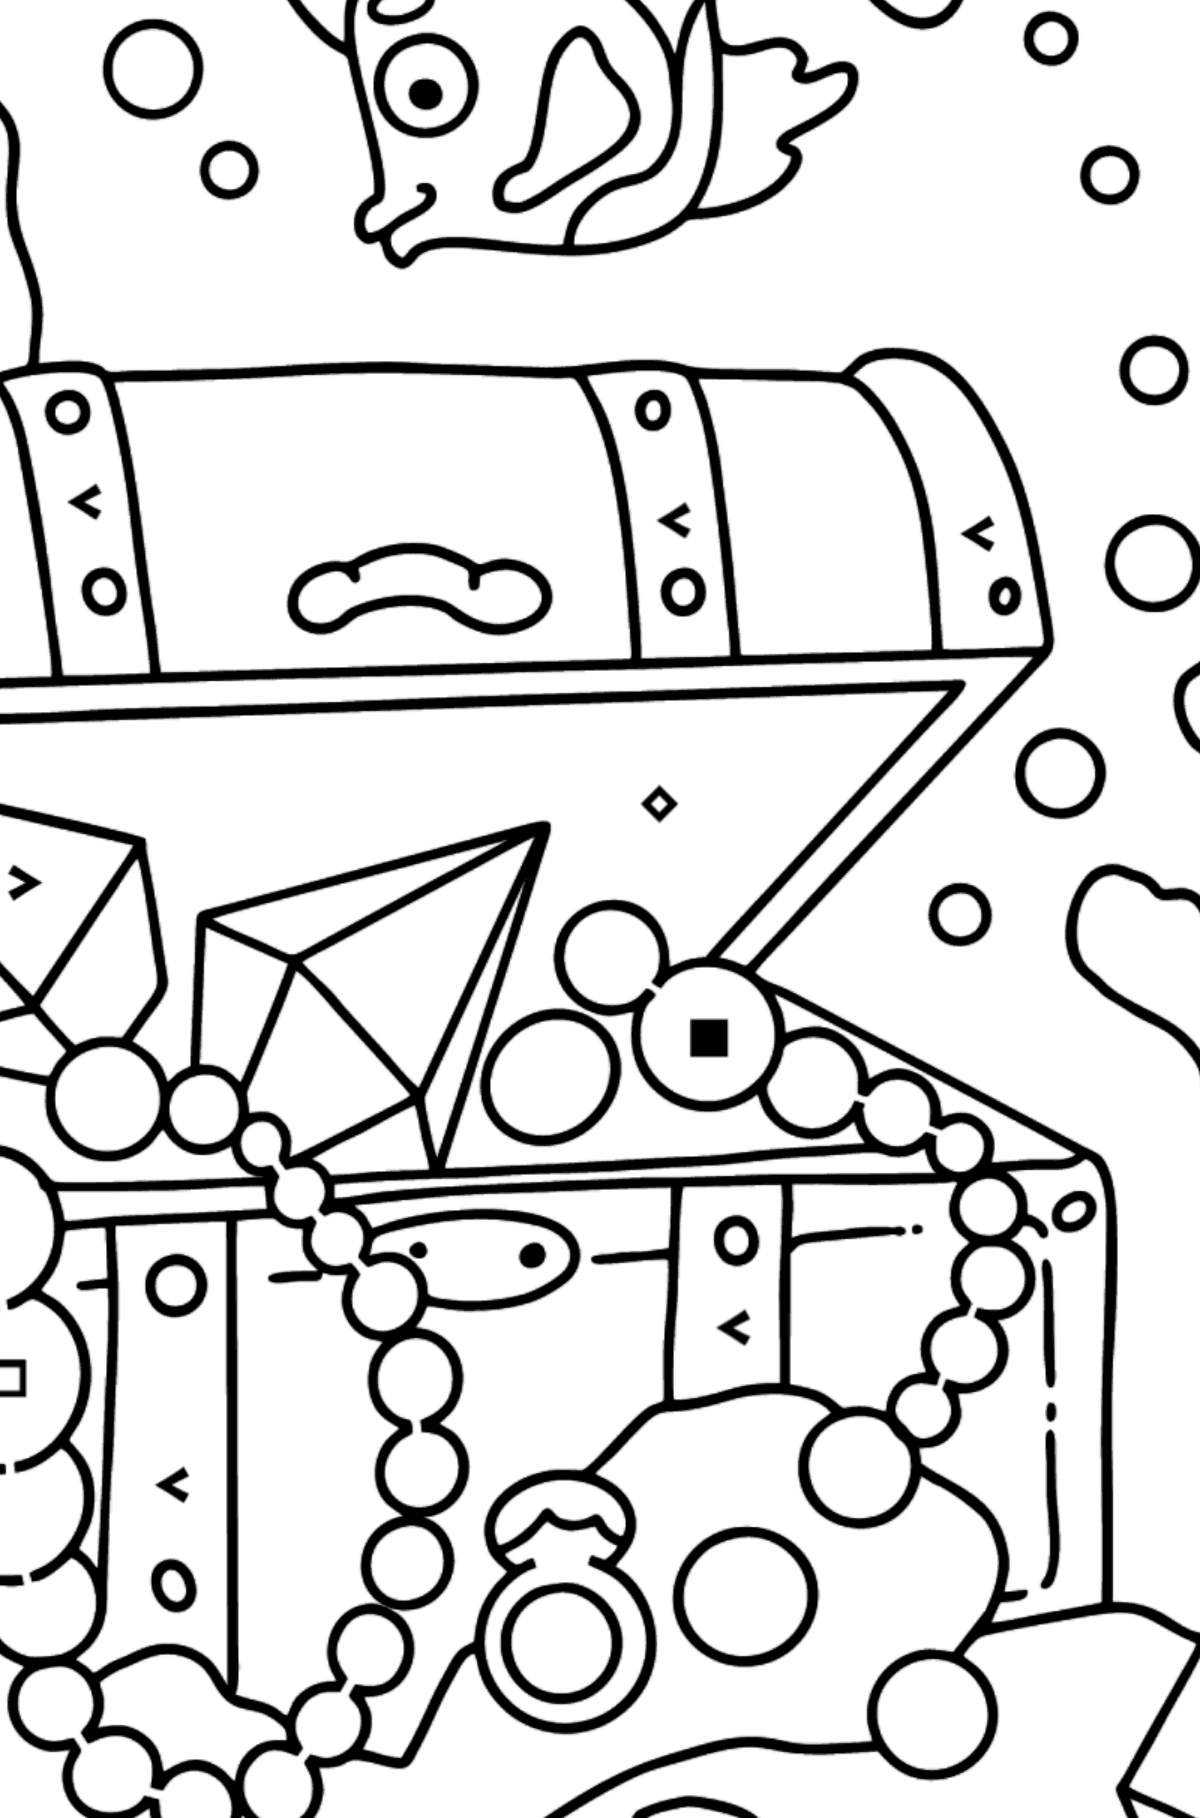 Coloring Page - A Fish is Swimming Around a Pirate's Chest - Coloring by Symbols for Kids